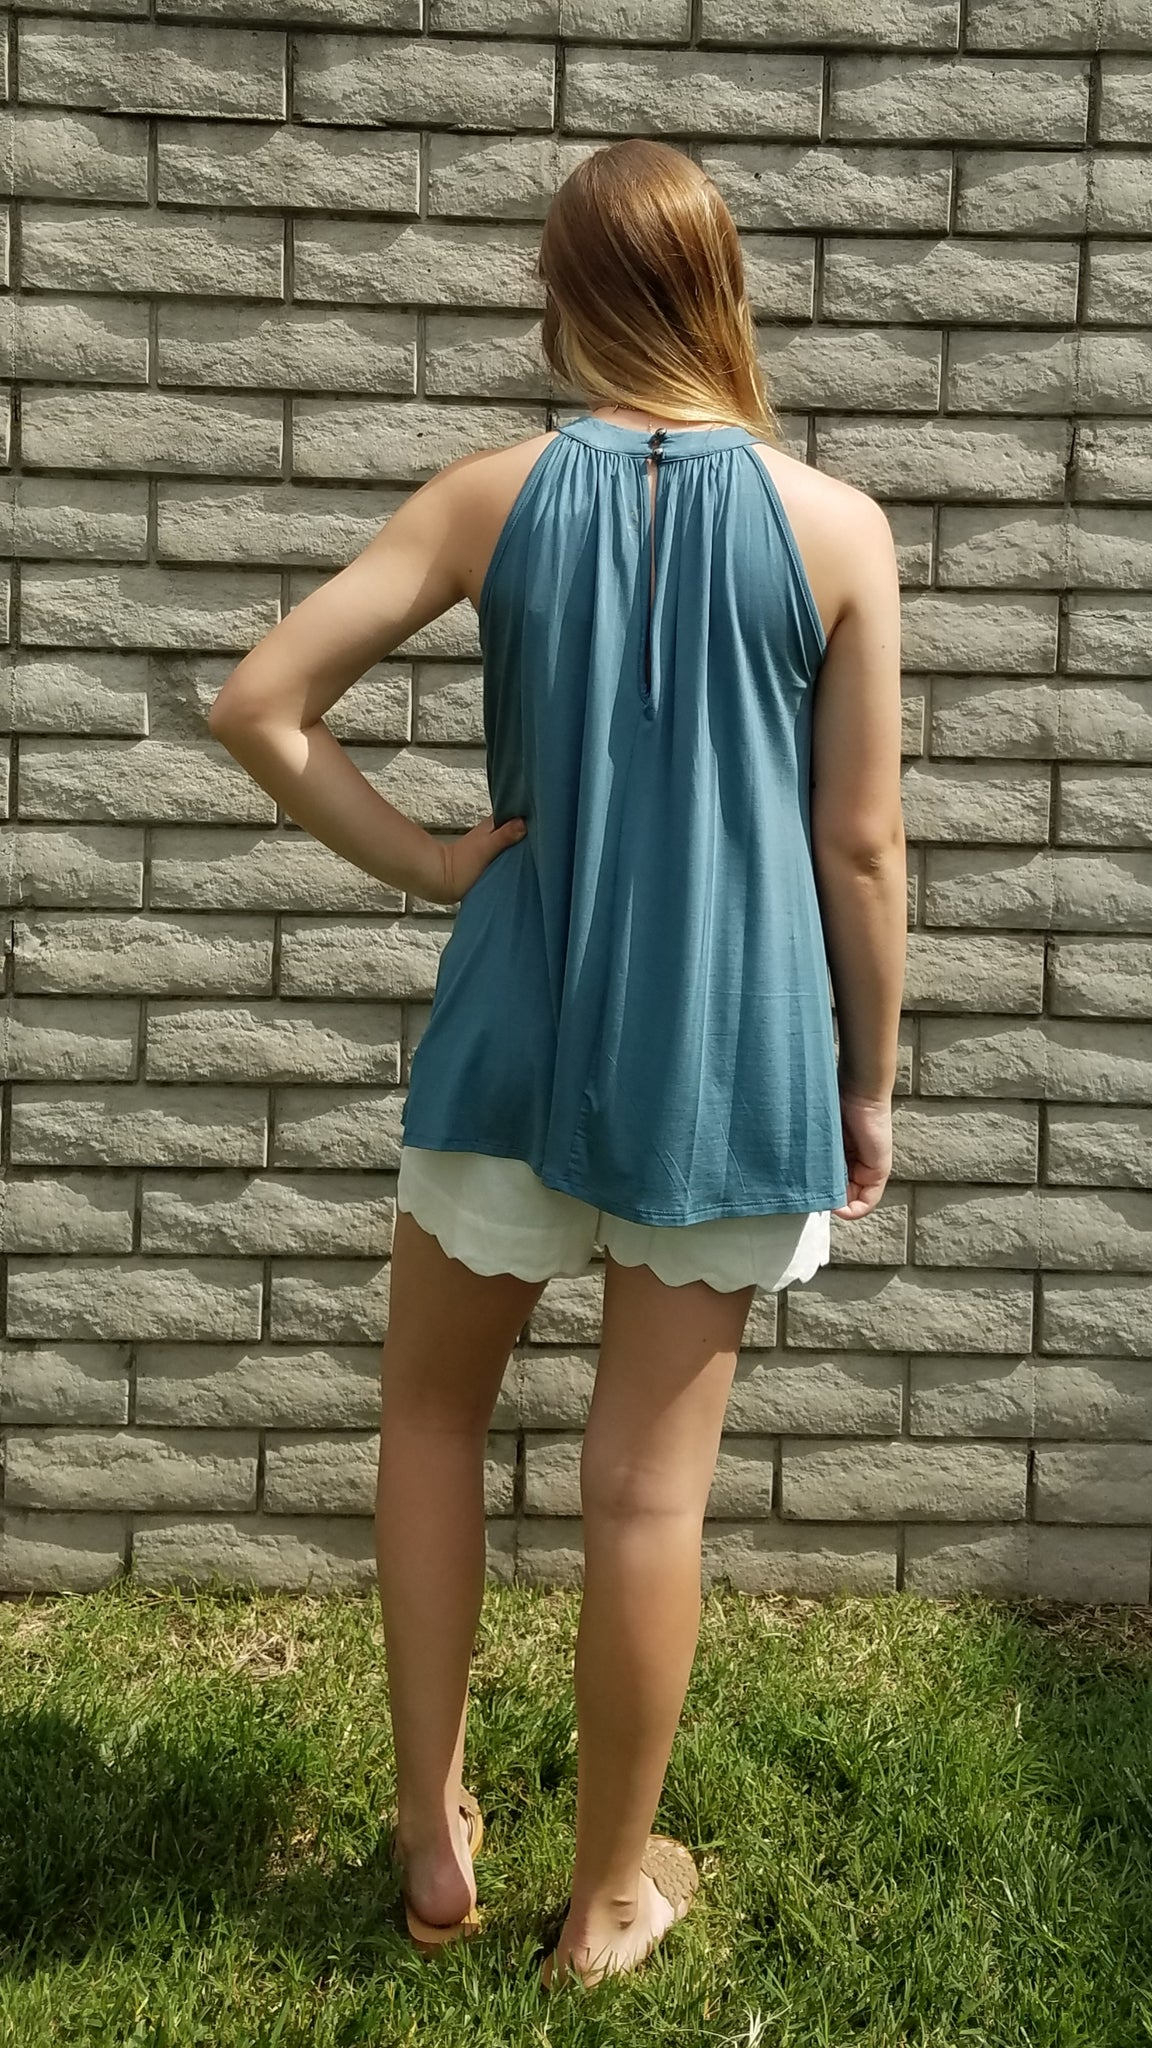 TT Sleeveless High Neck Stone Green Top